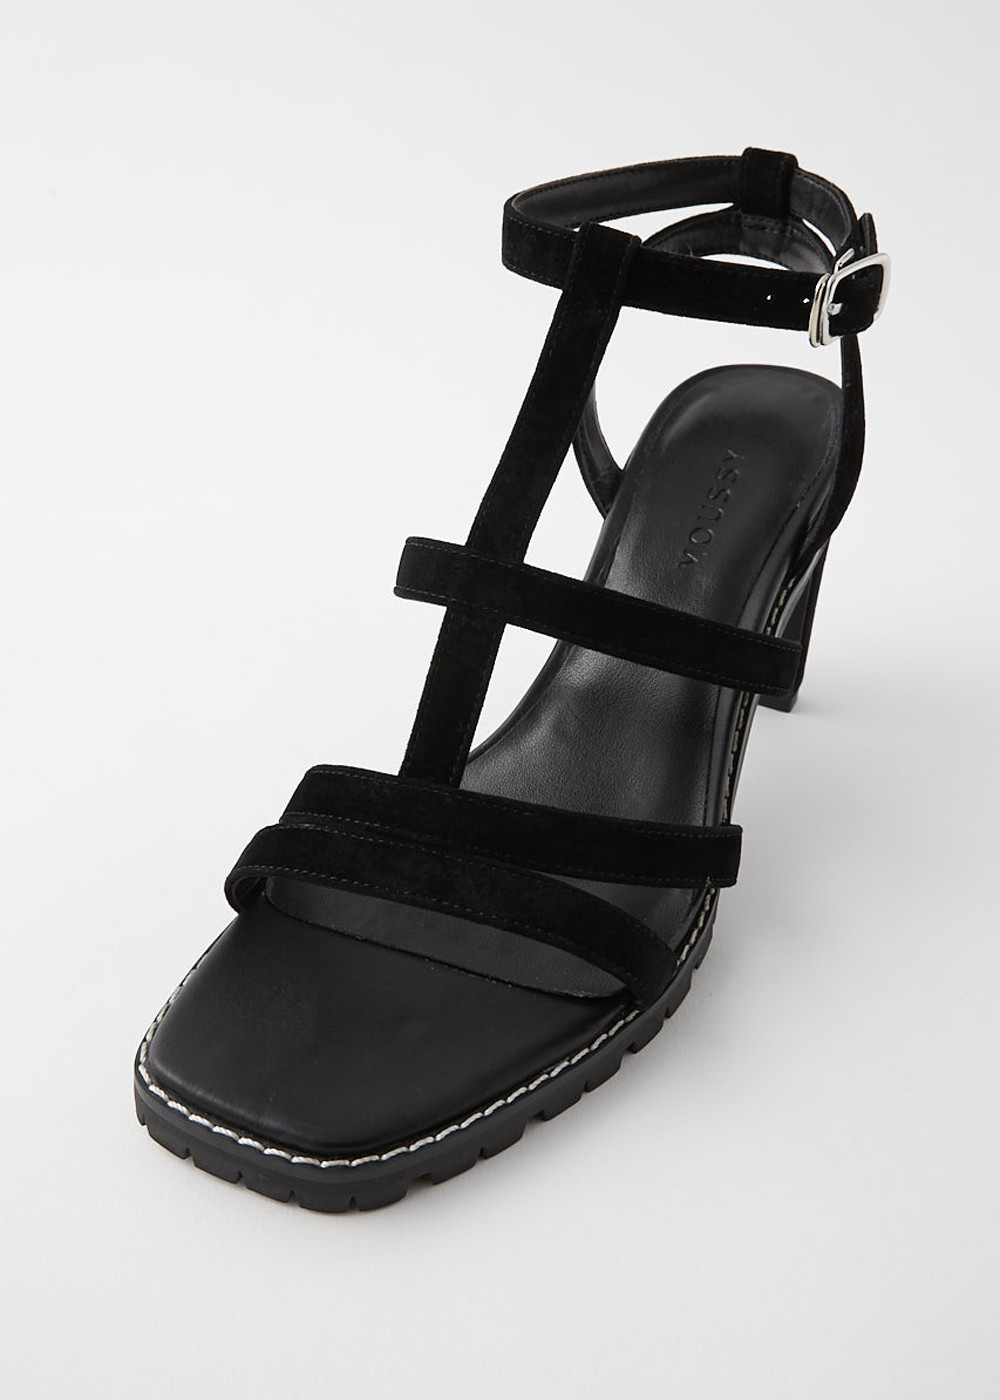 【最大70%OFF】CROSS UPPER SANDALS|BLK|サンダル|MOUSSY